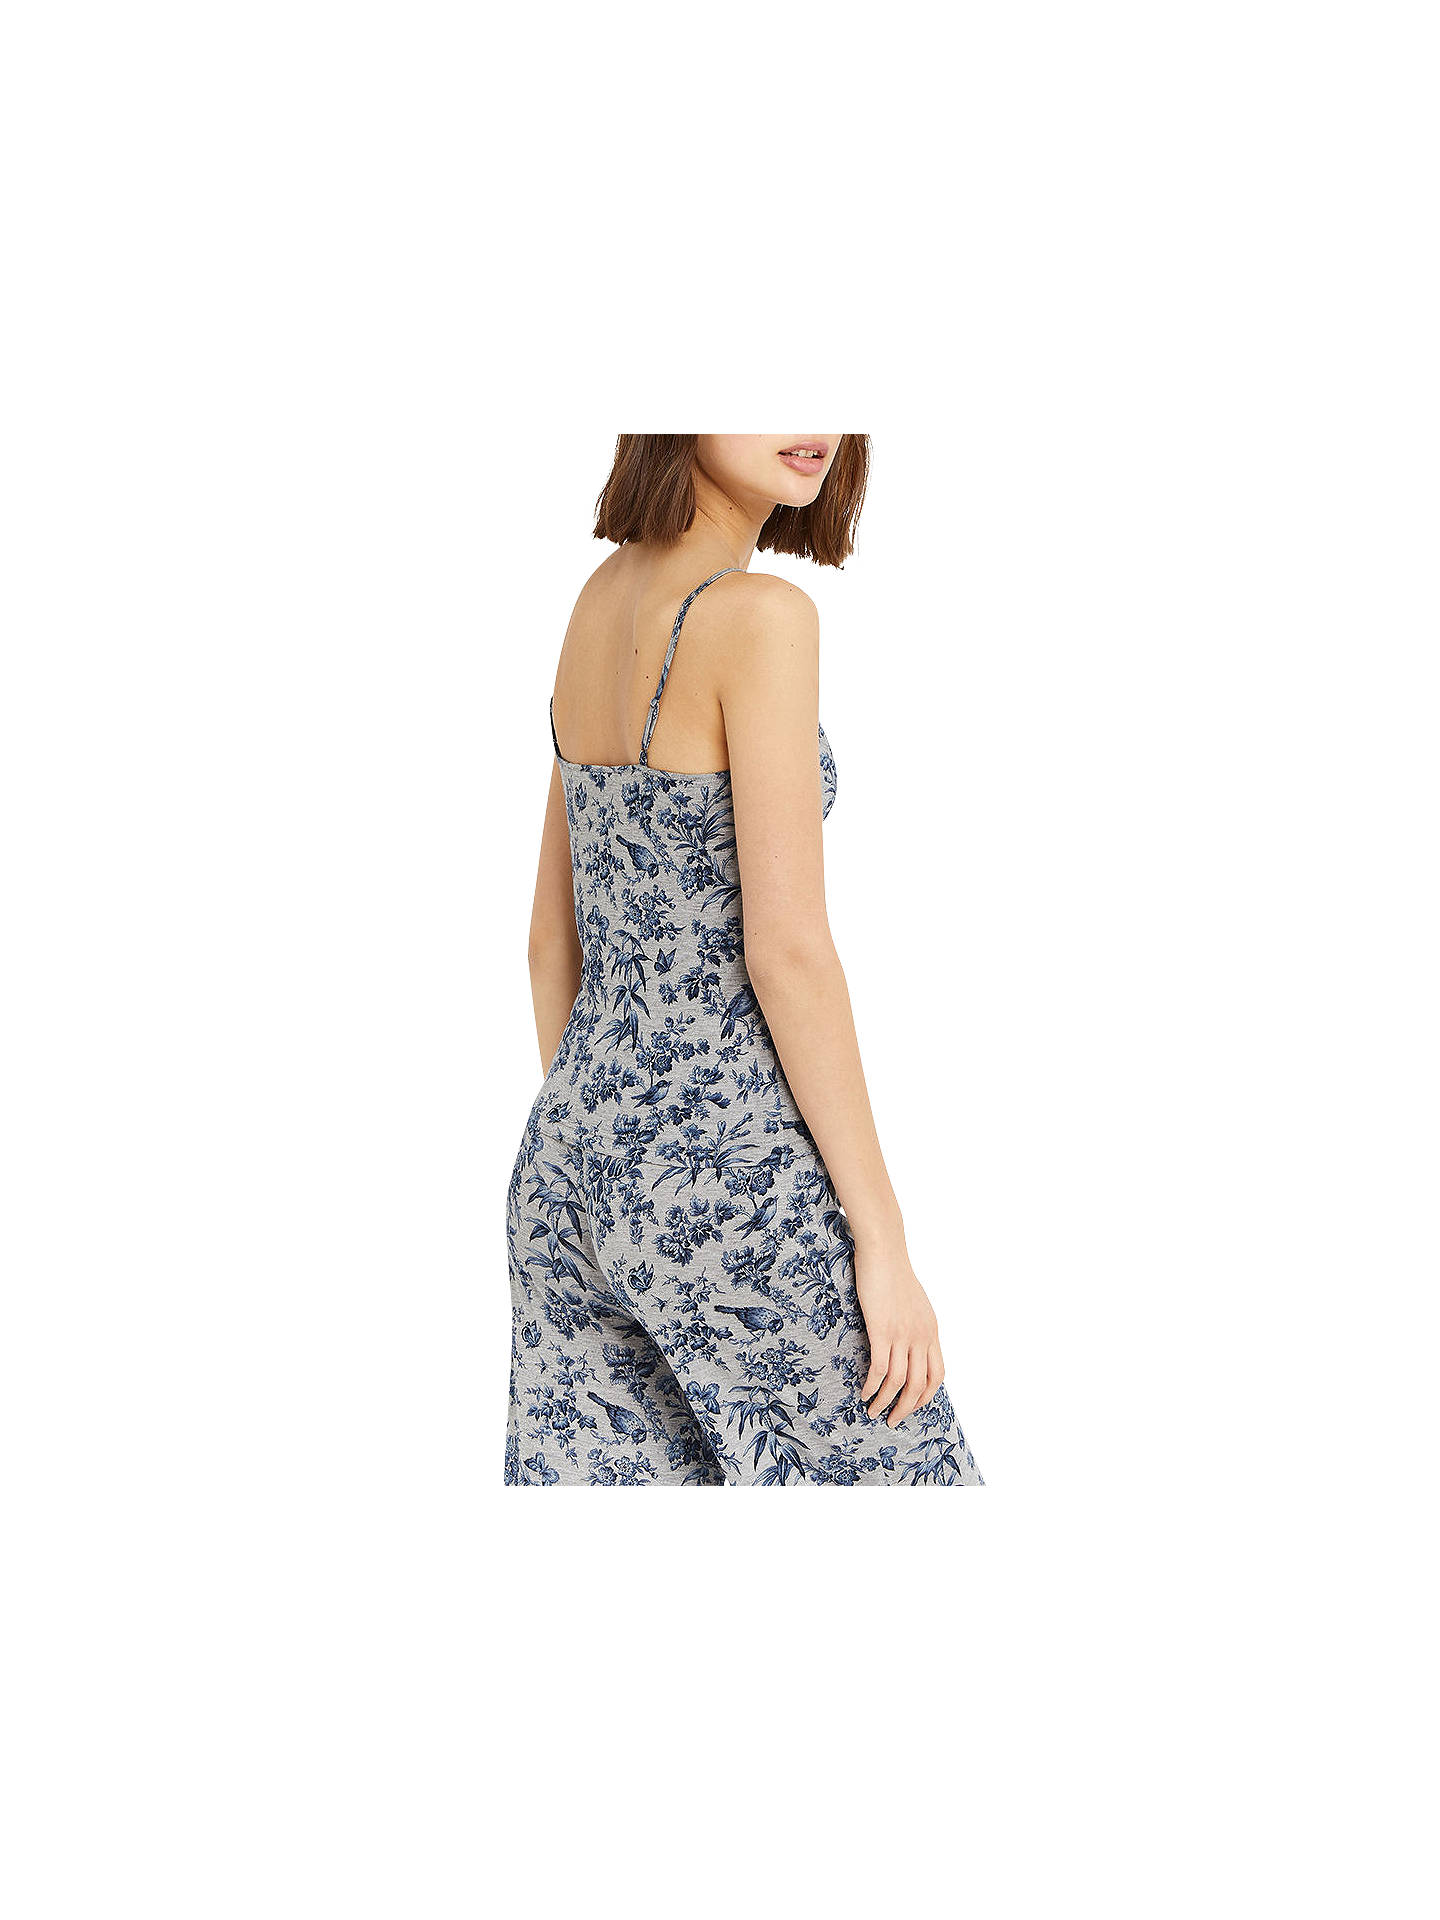 BuyOasis Floral Print Vest Top, Grey/Multi, XS Online at johnlewis.com